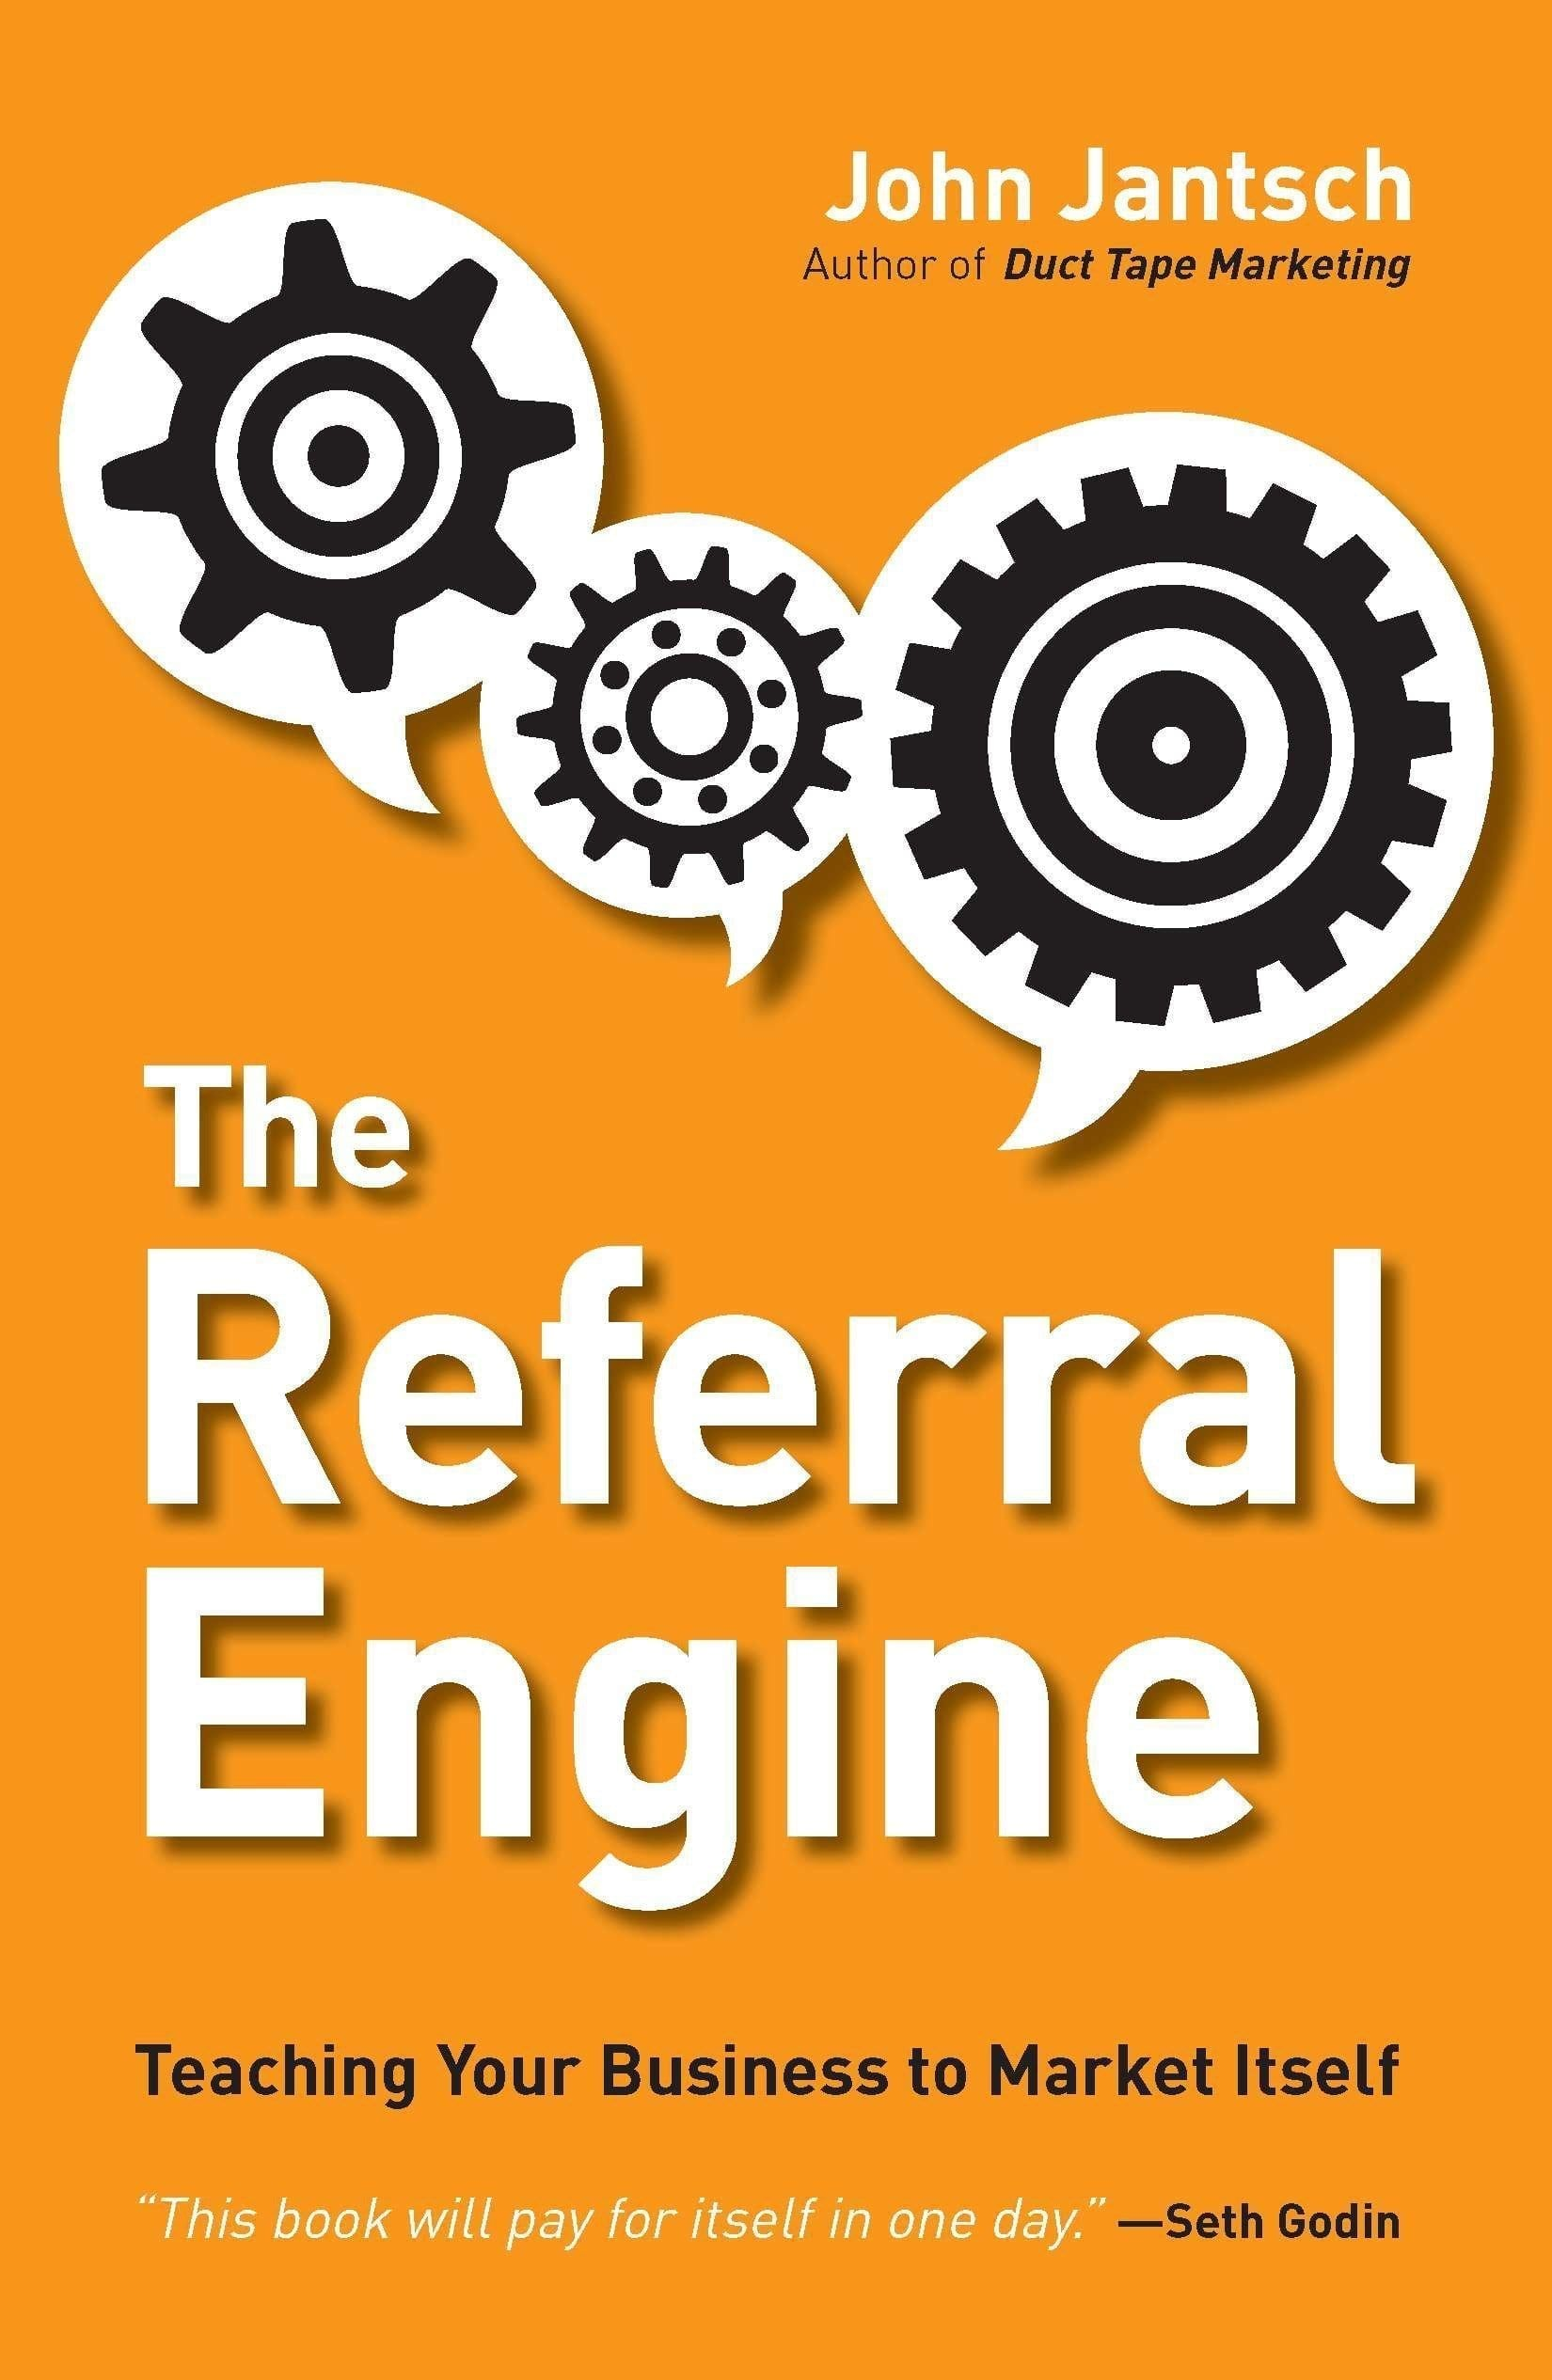 The Referral Engine John Jantsch